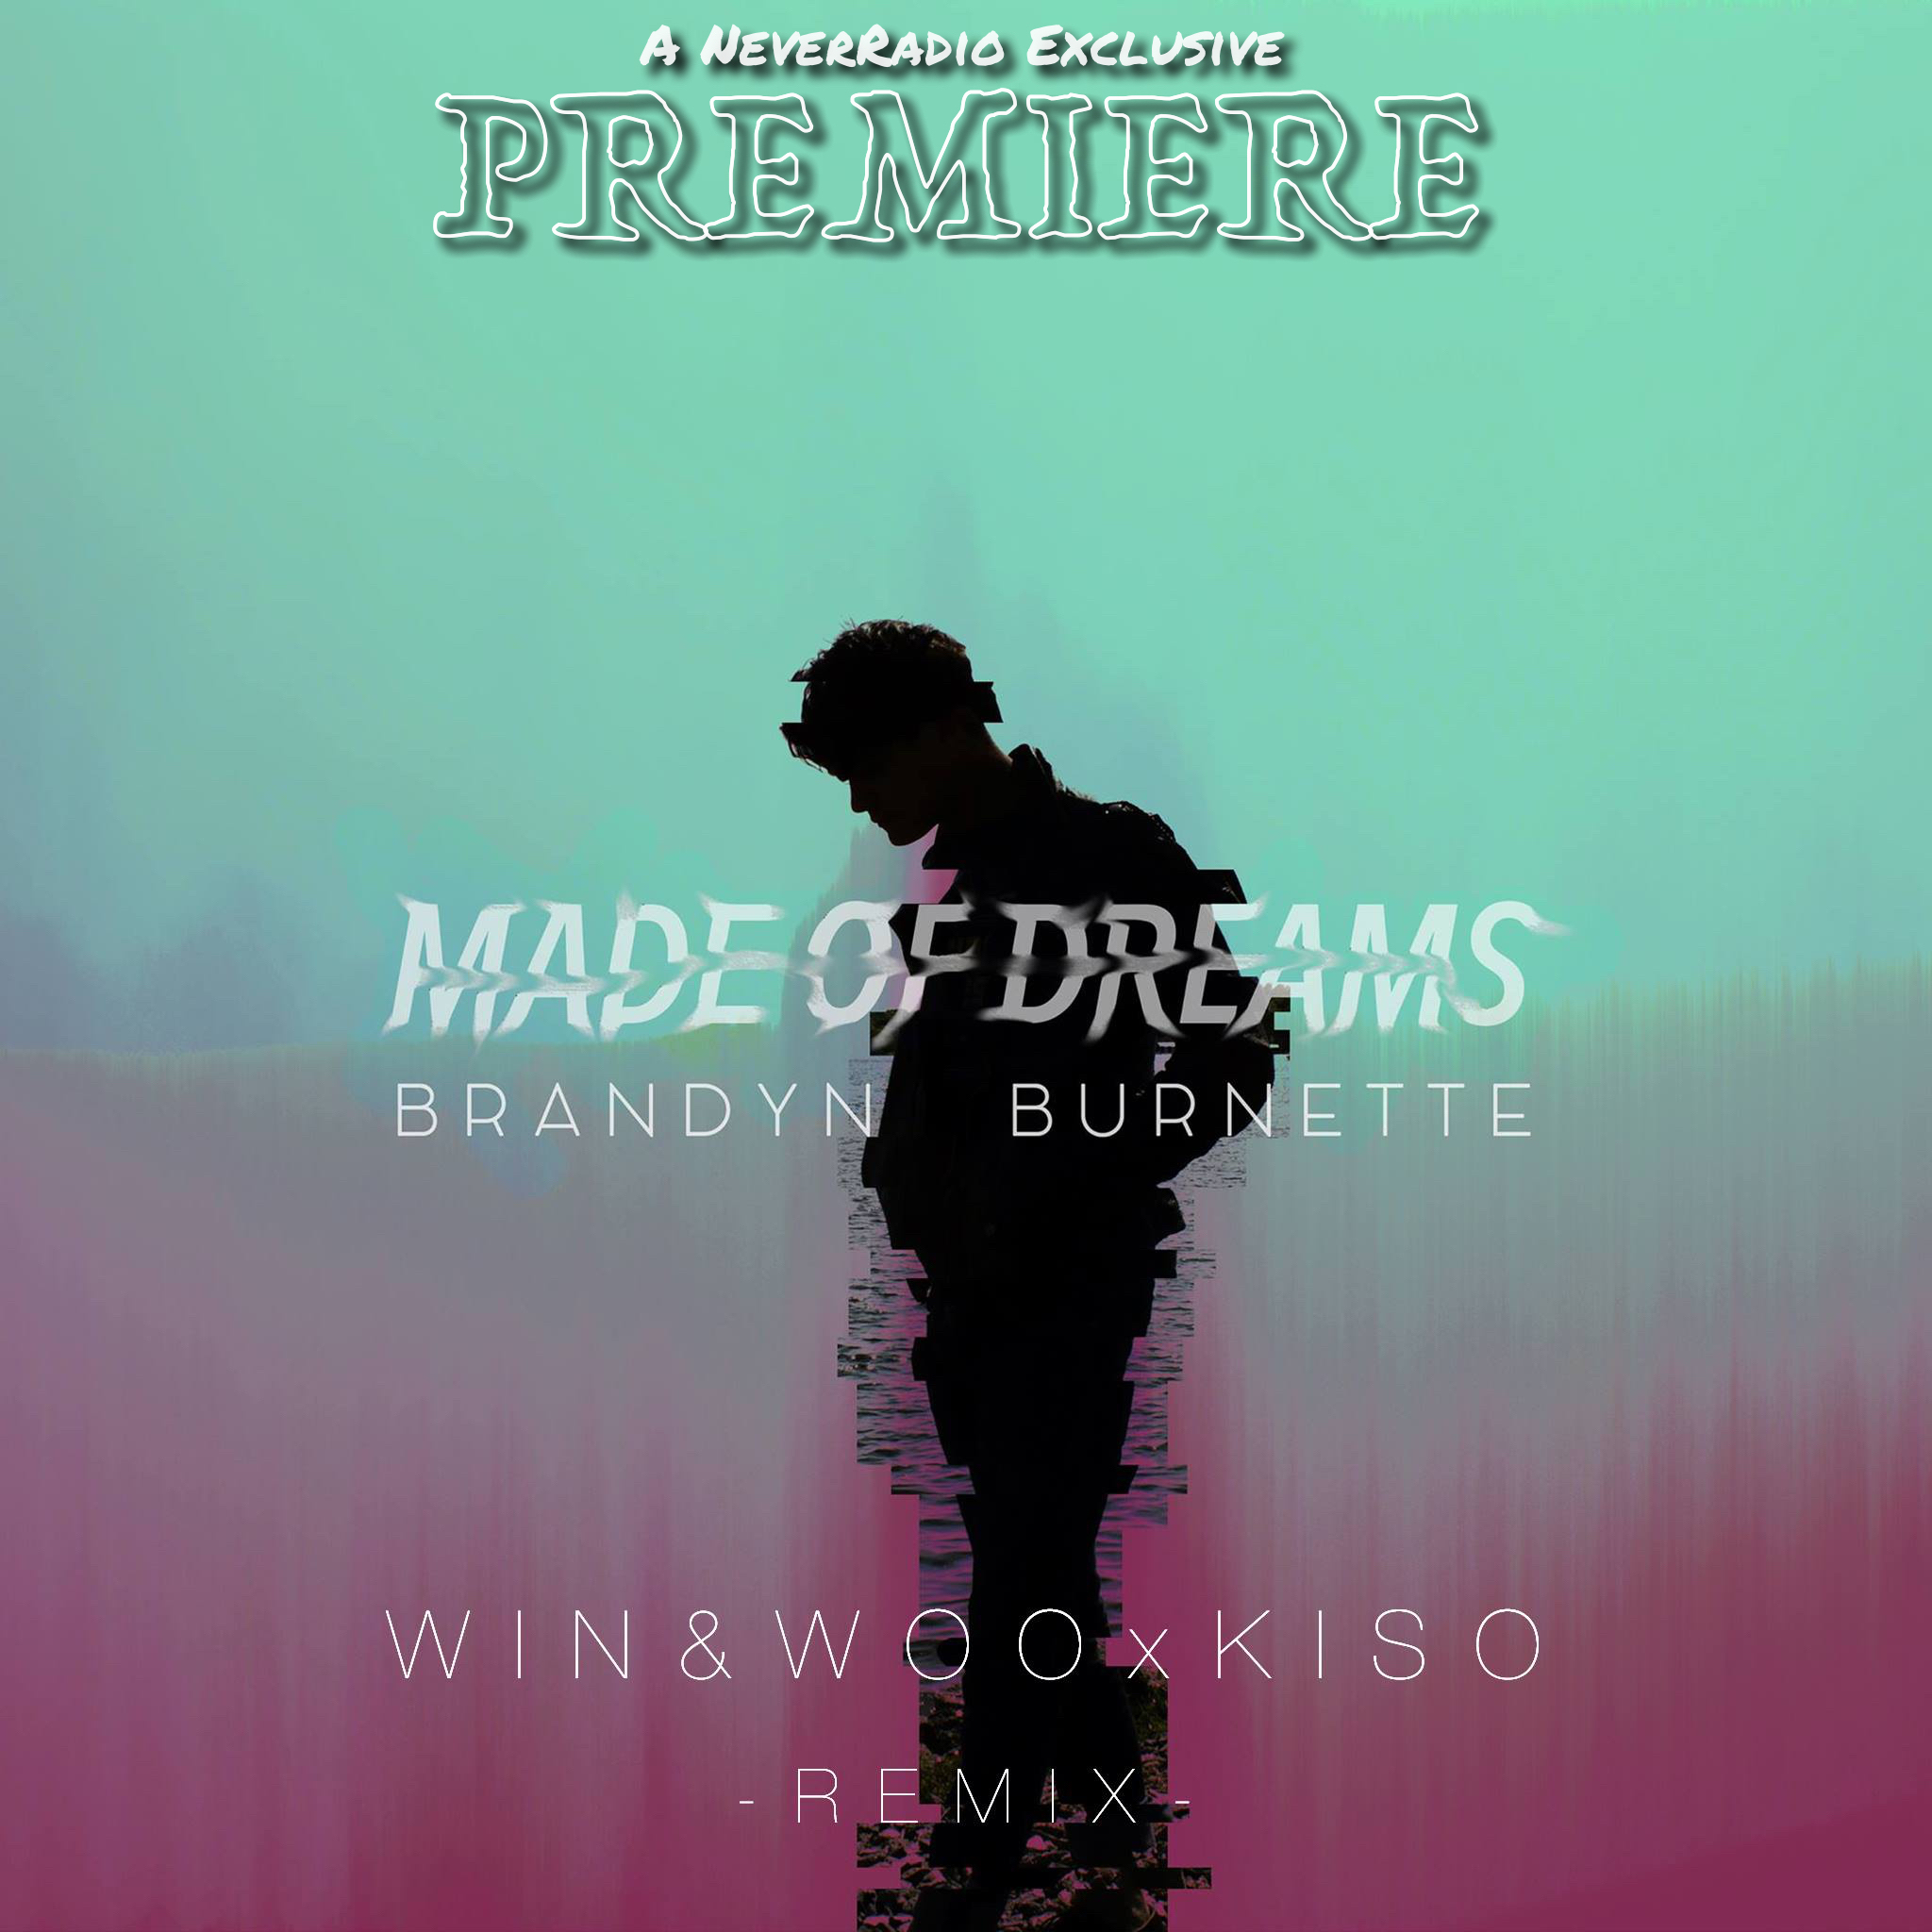 Brandyn Burnette Made of Dreams Kiso Win and Woo Remix